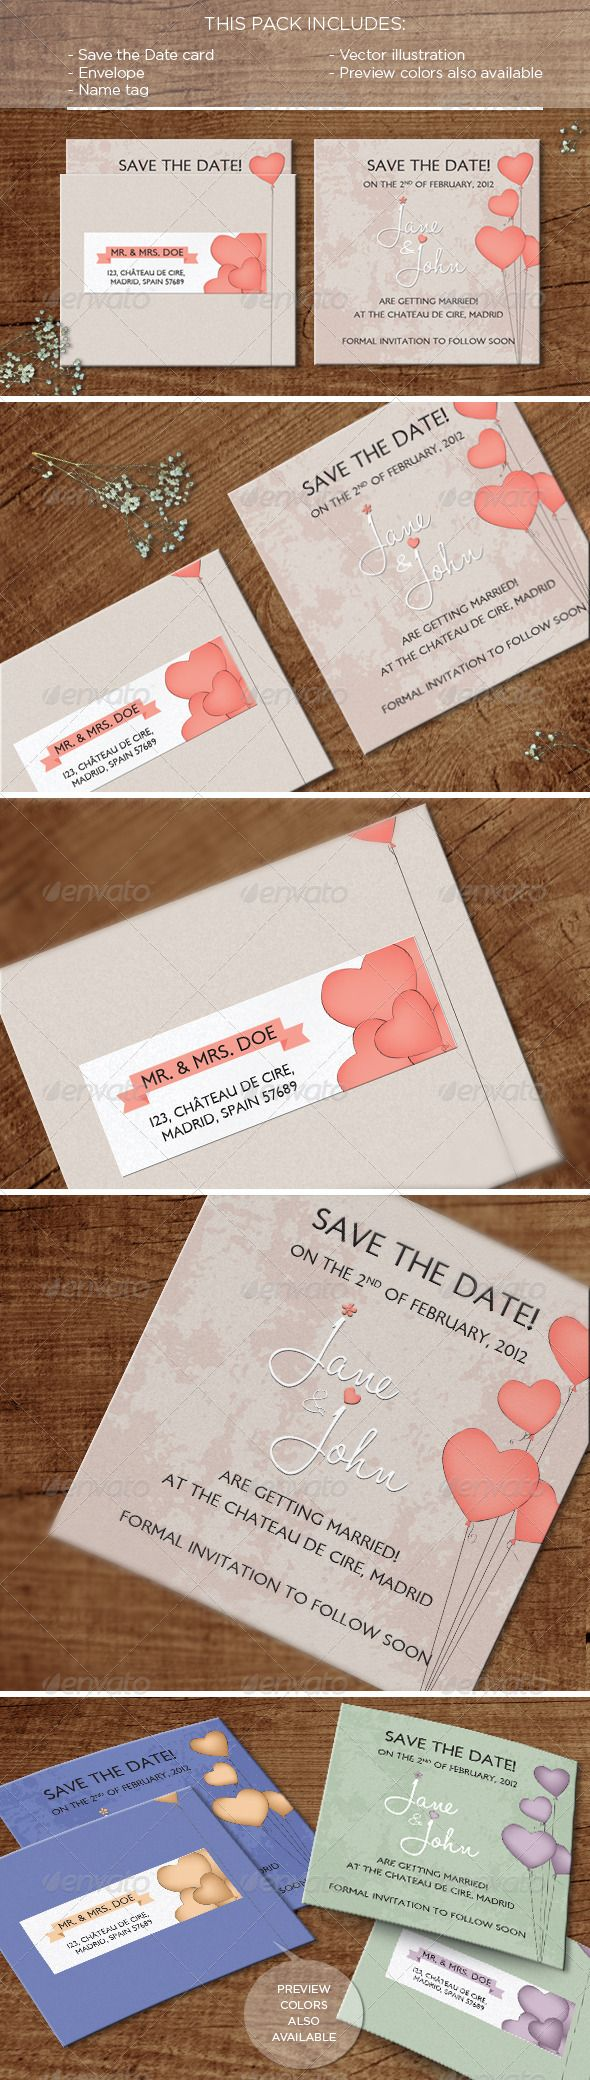 92 best print templates images on pinterest print templates font in the air save the date card reheart Gallery